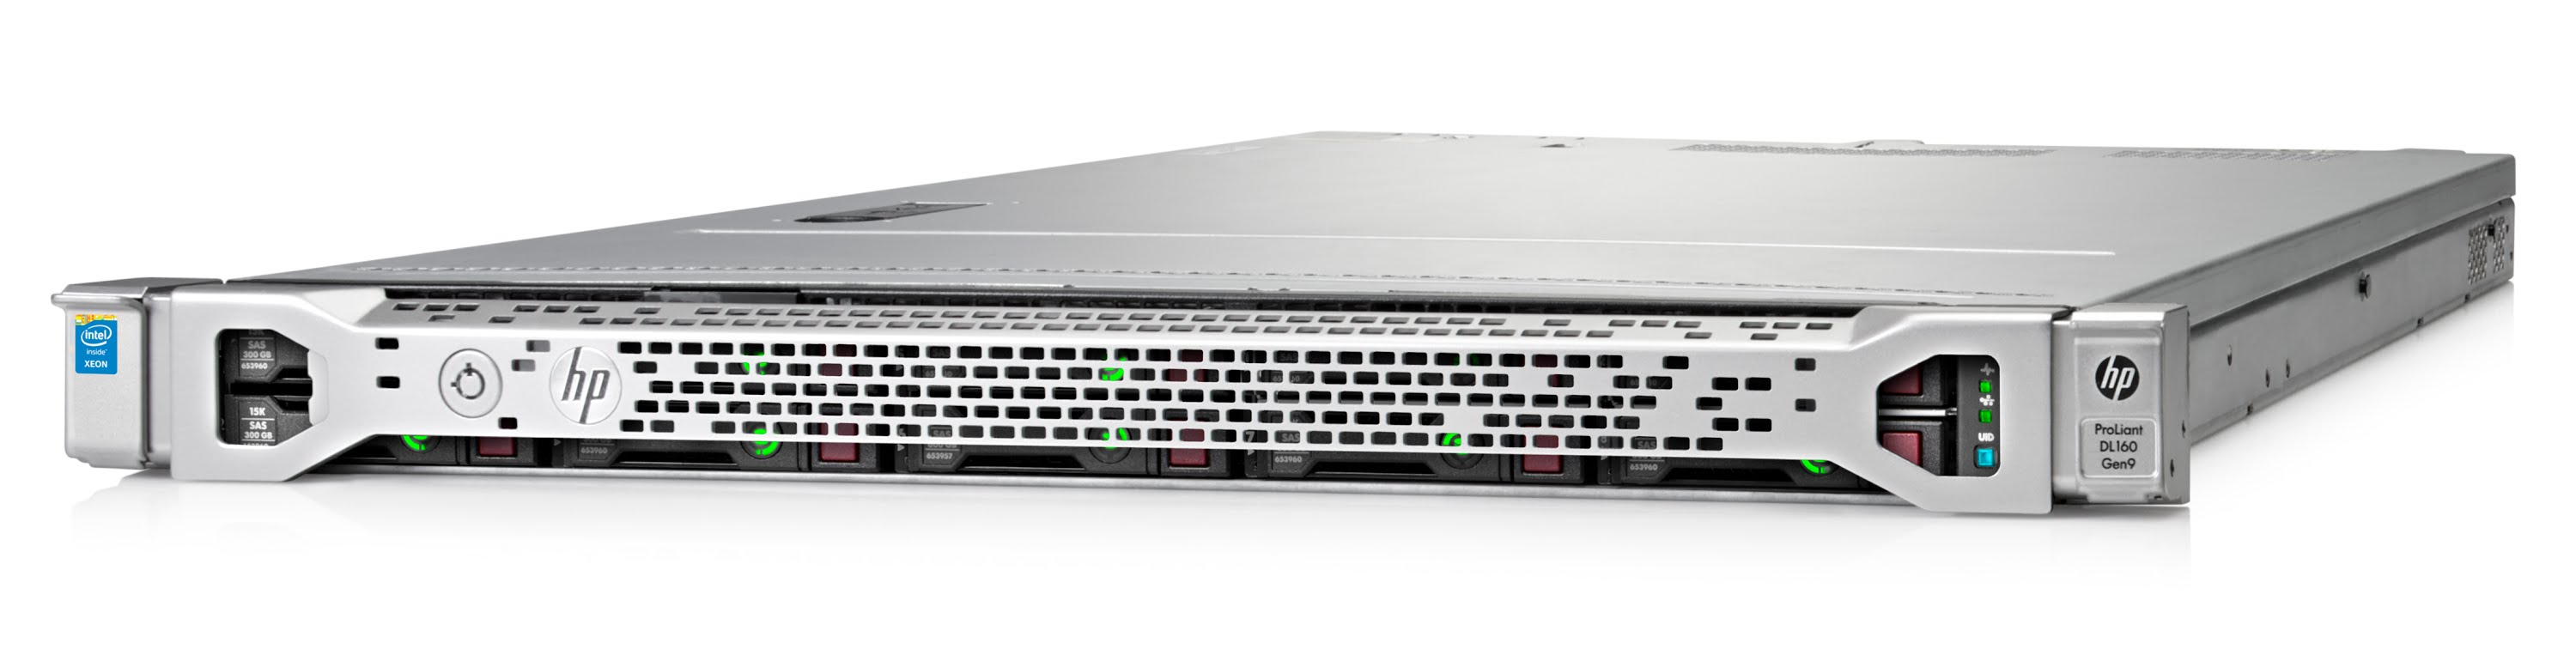 HPE DL160